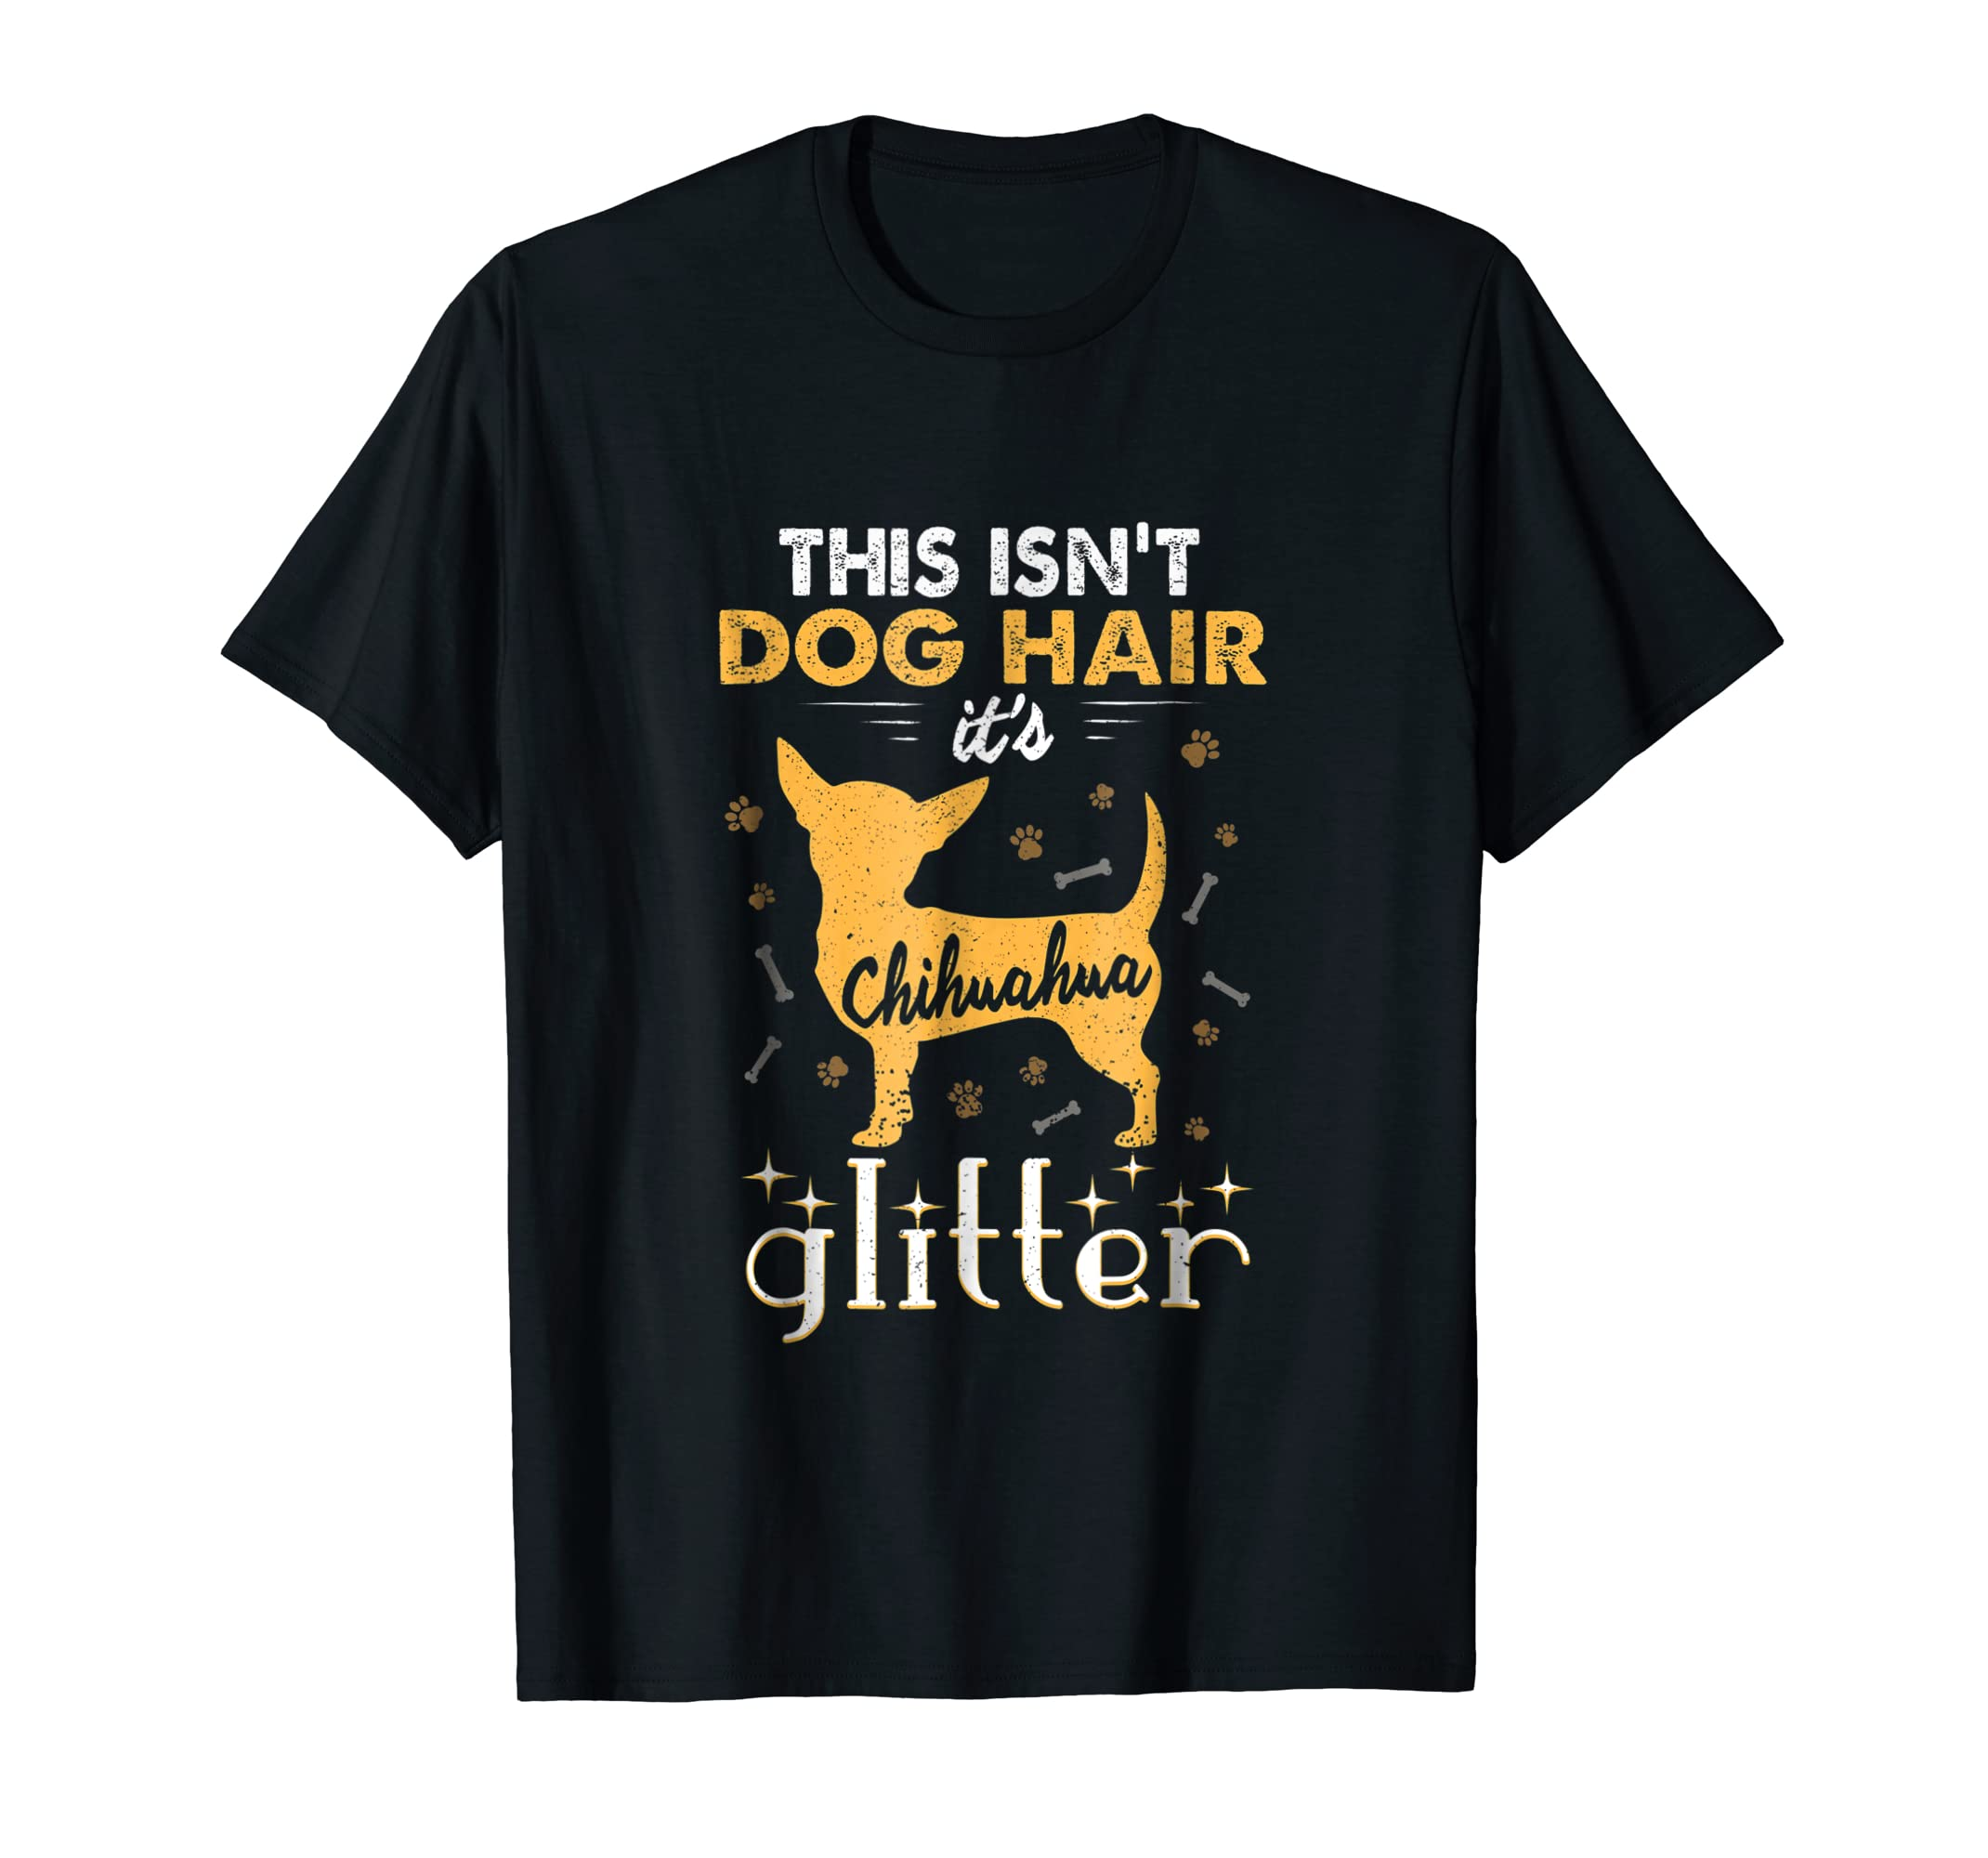 This Isn't Dog Hair It's Chihuahua Glitter Funny T-Shirt-Men's T-Shirt-Black